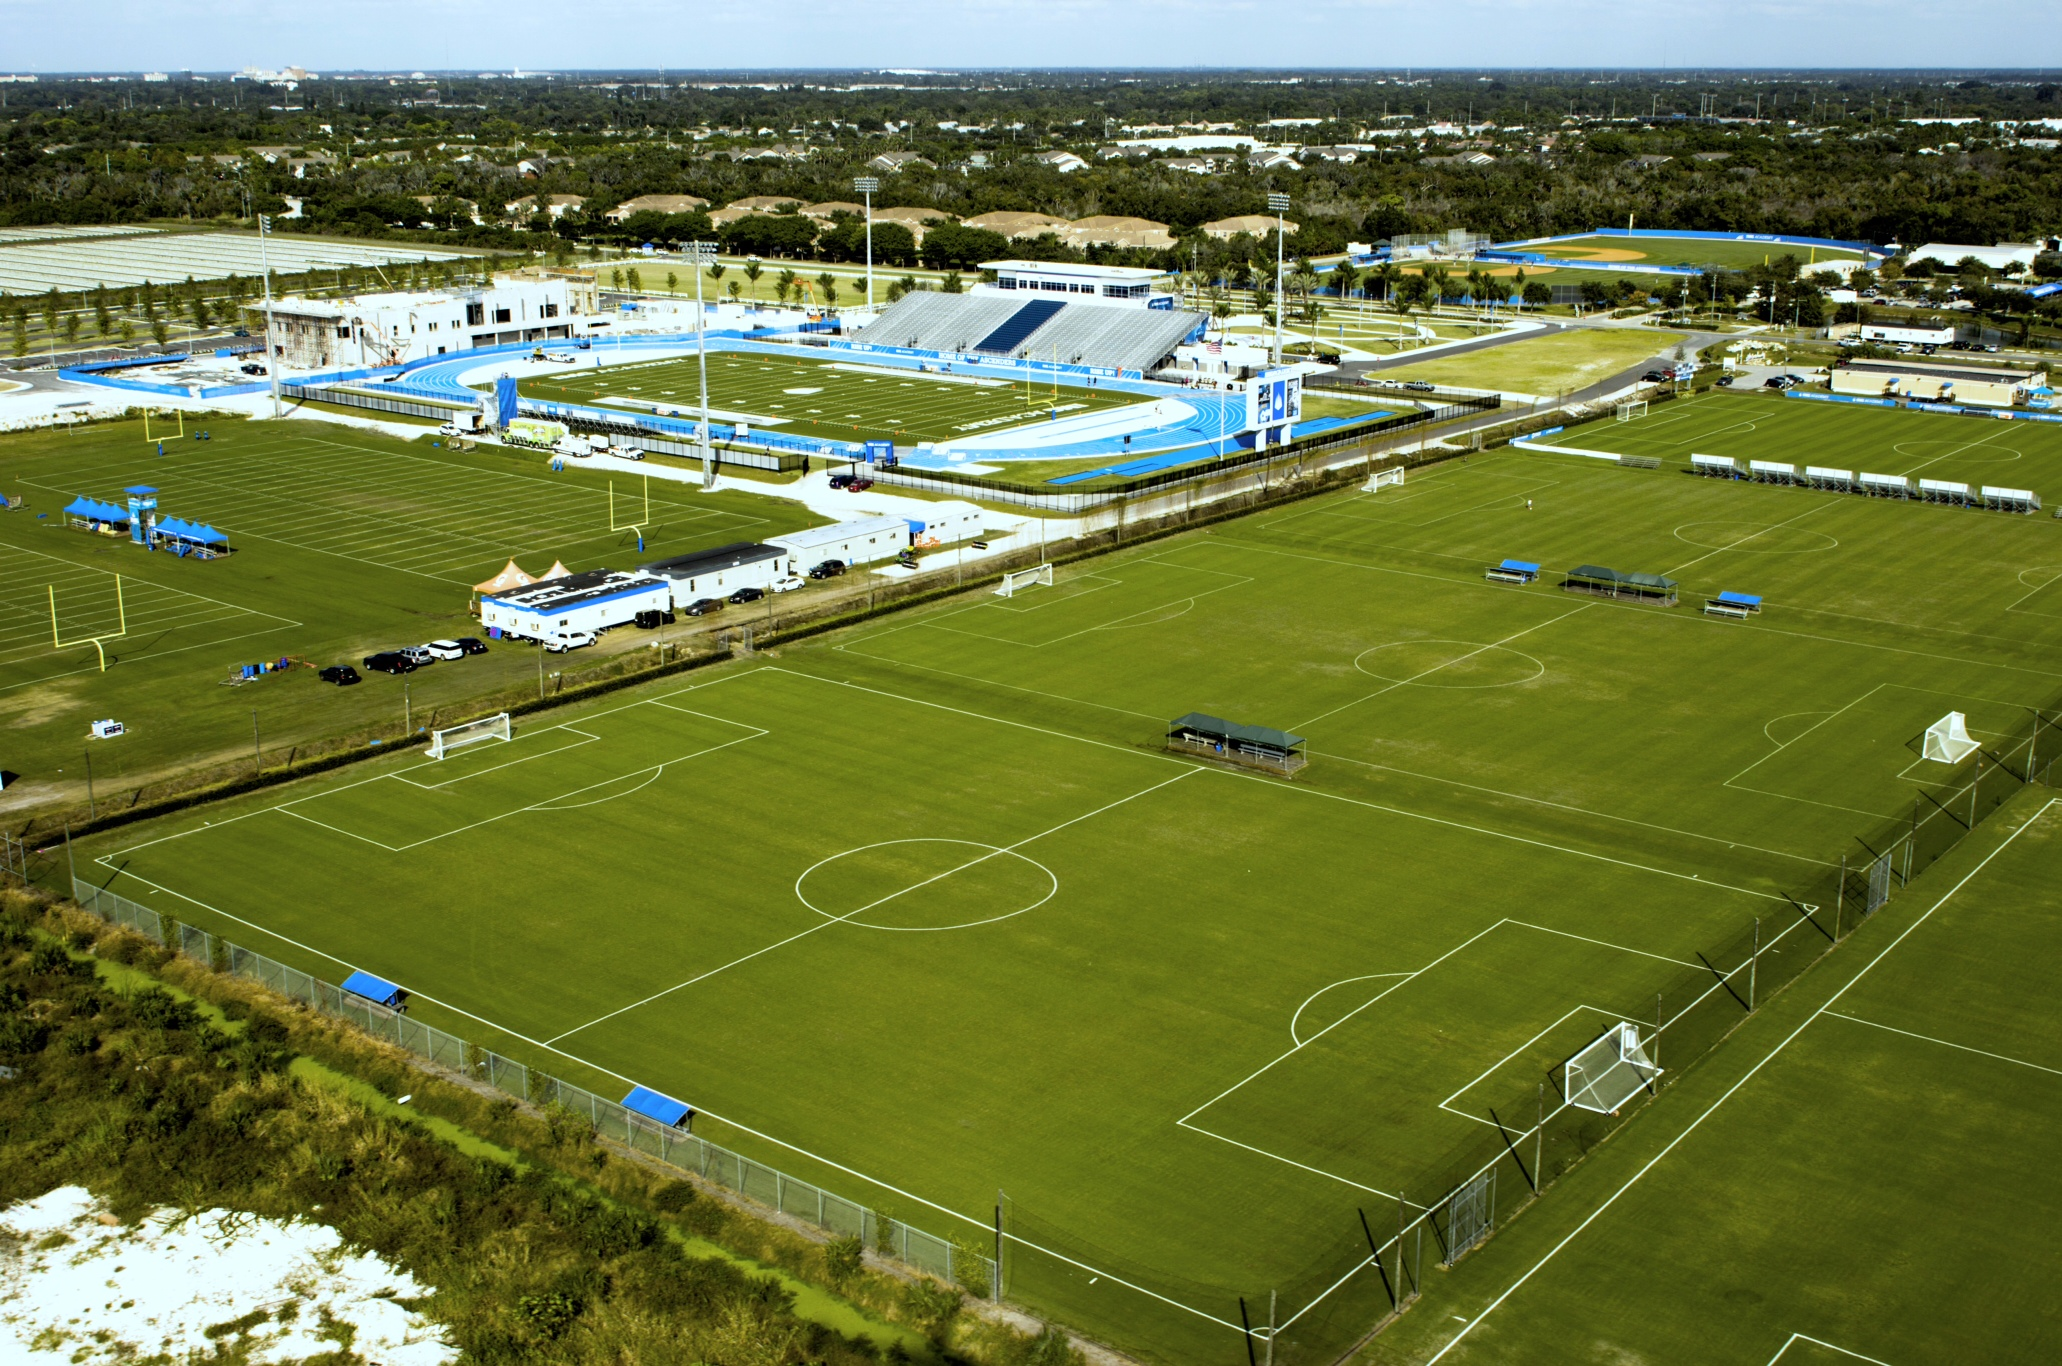 Football Tour Of Florida, Orlando & IMG Academy